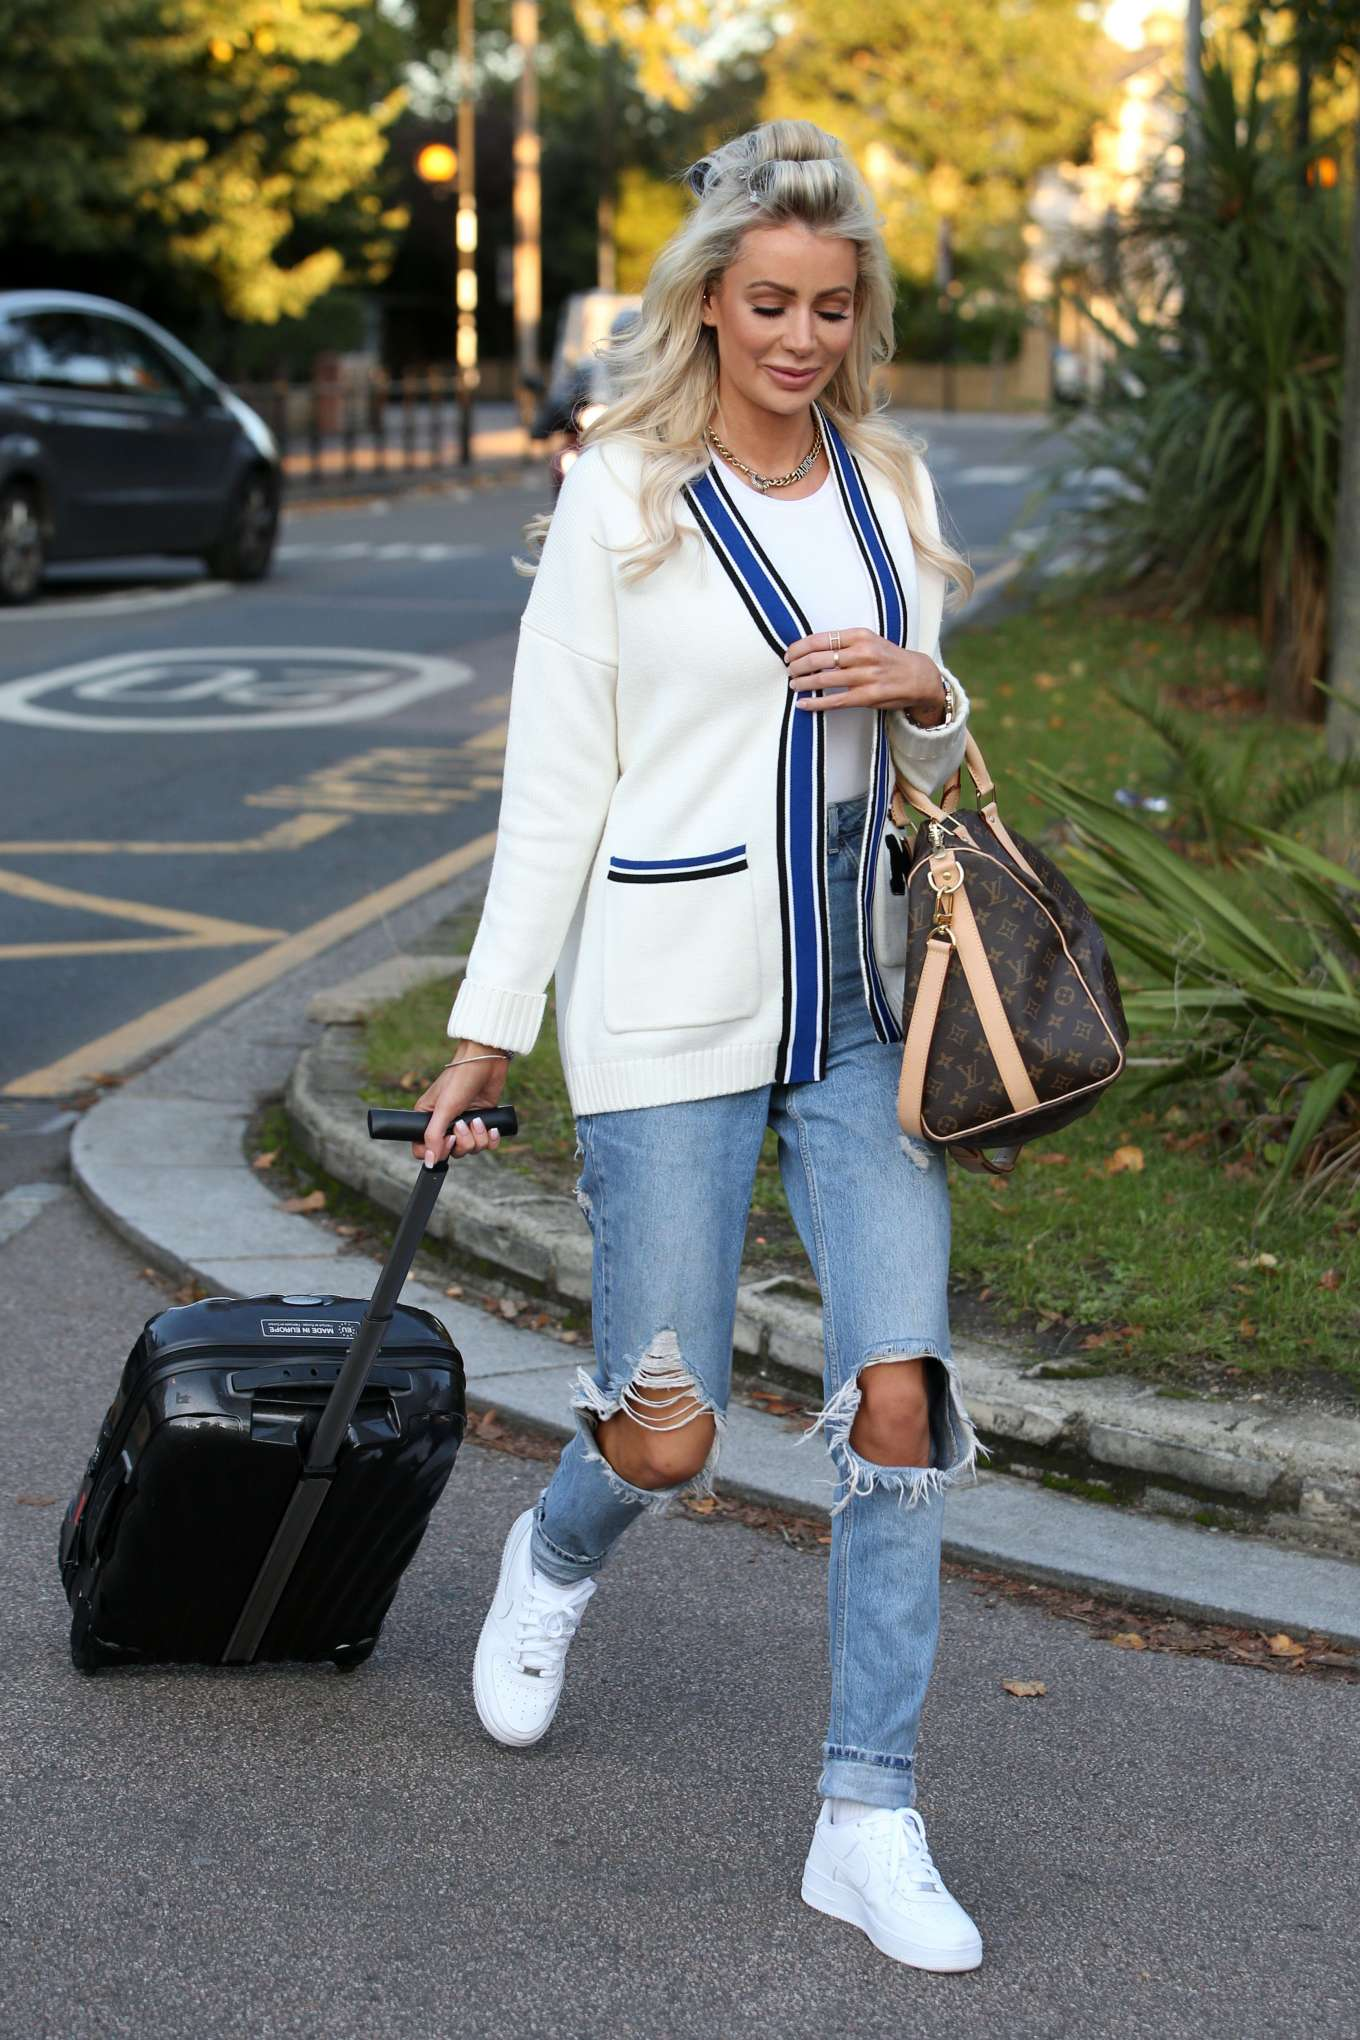 Olivia Attwood - 'The Only Way Is Essex' TV show filming in Essex